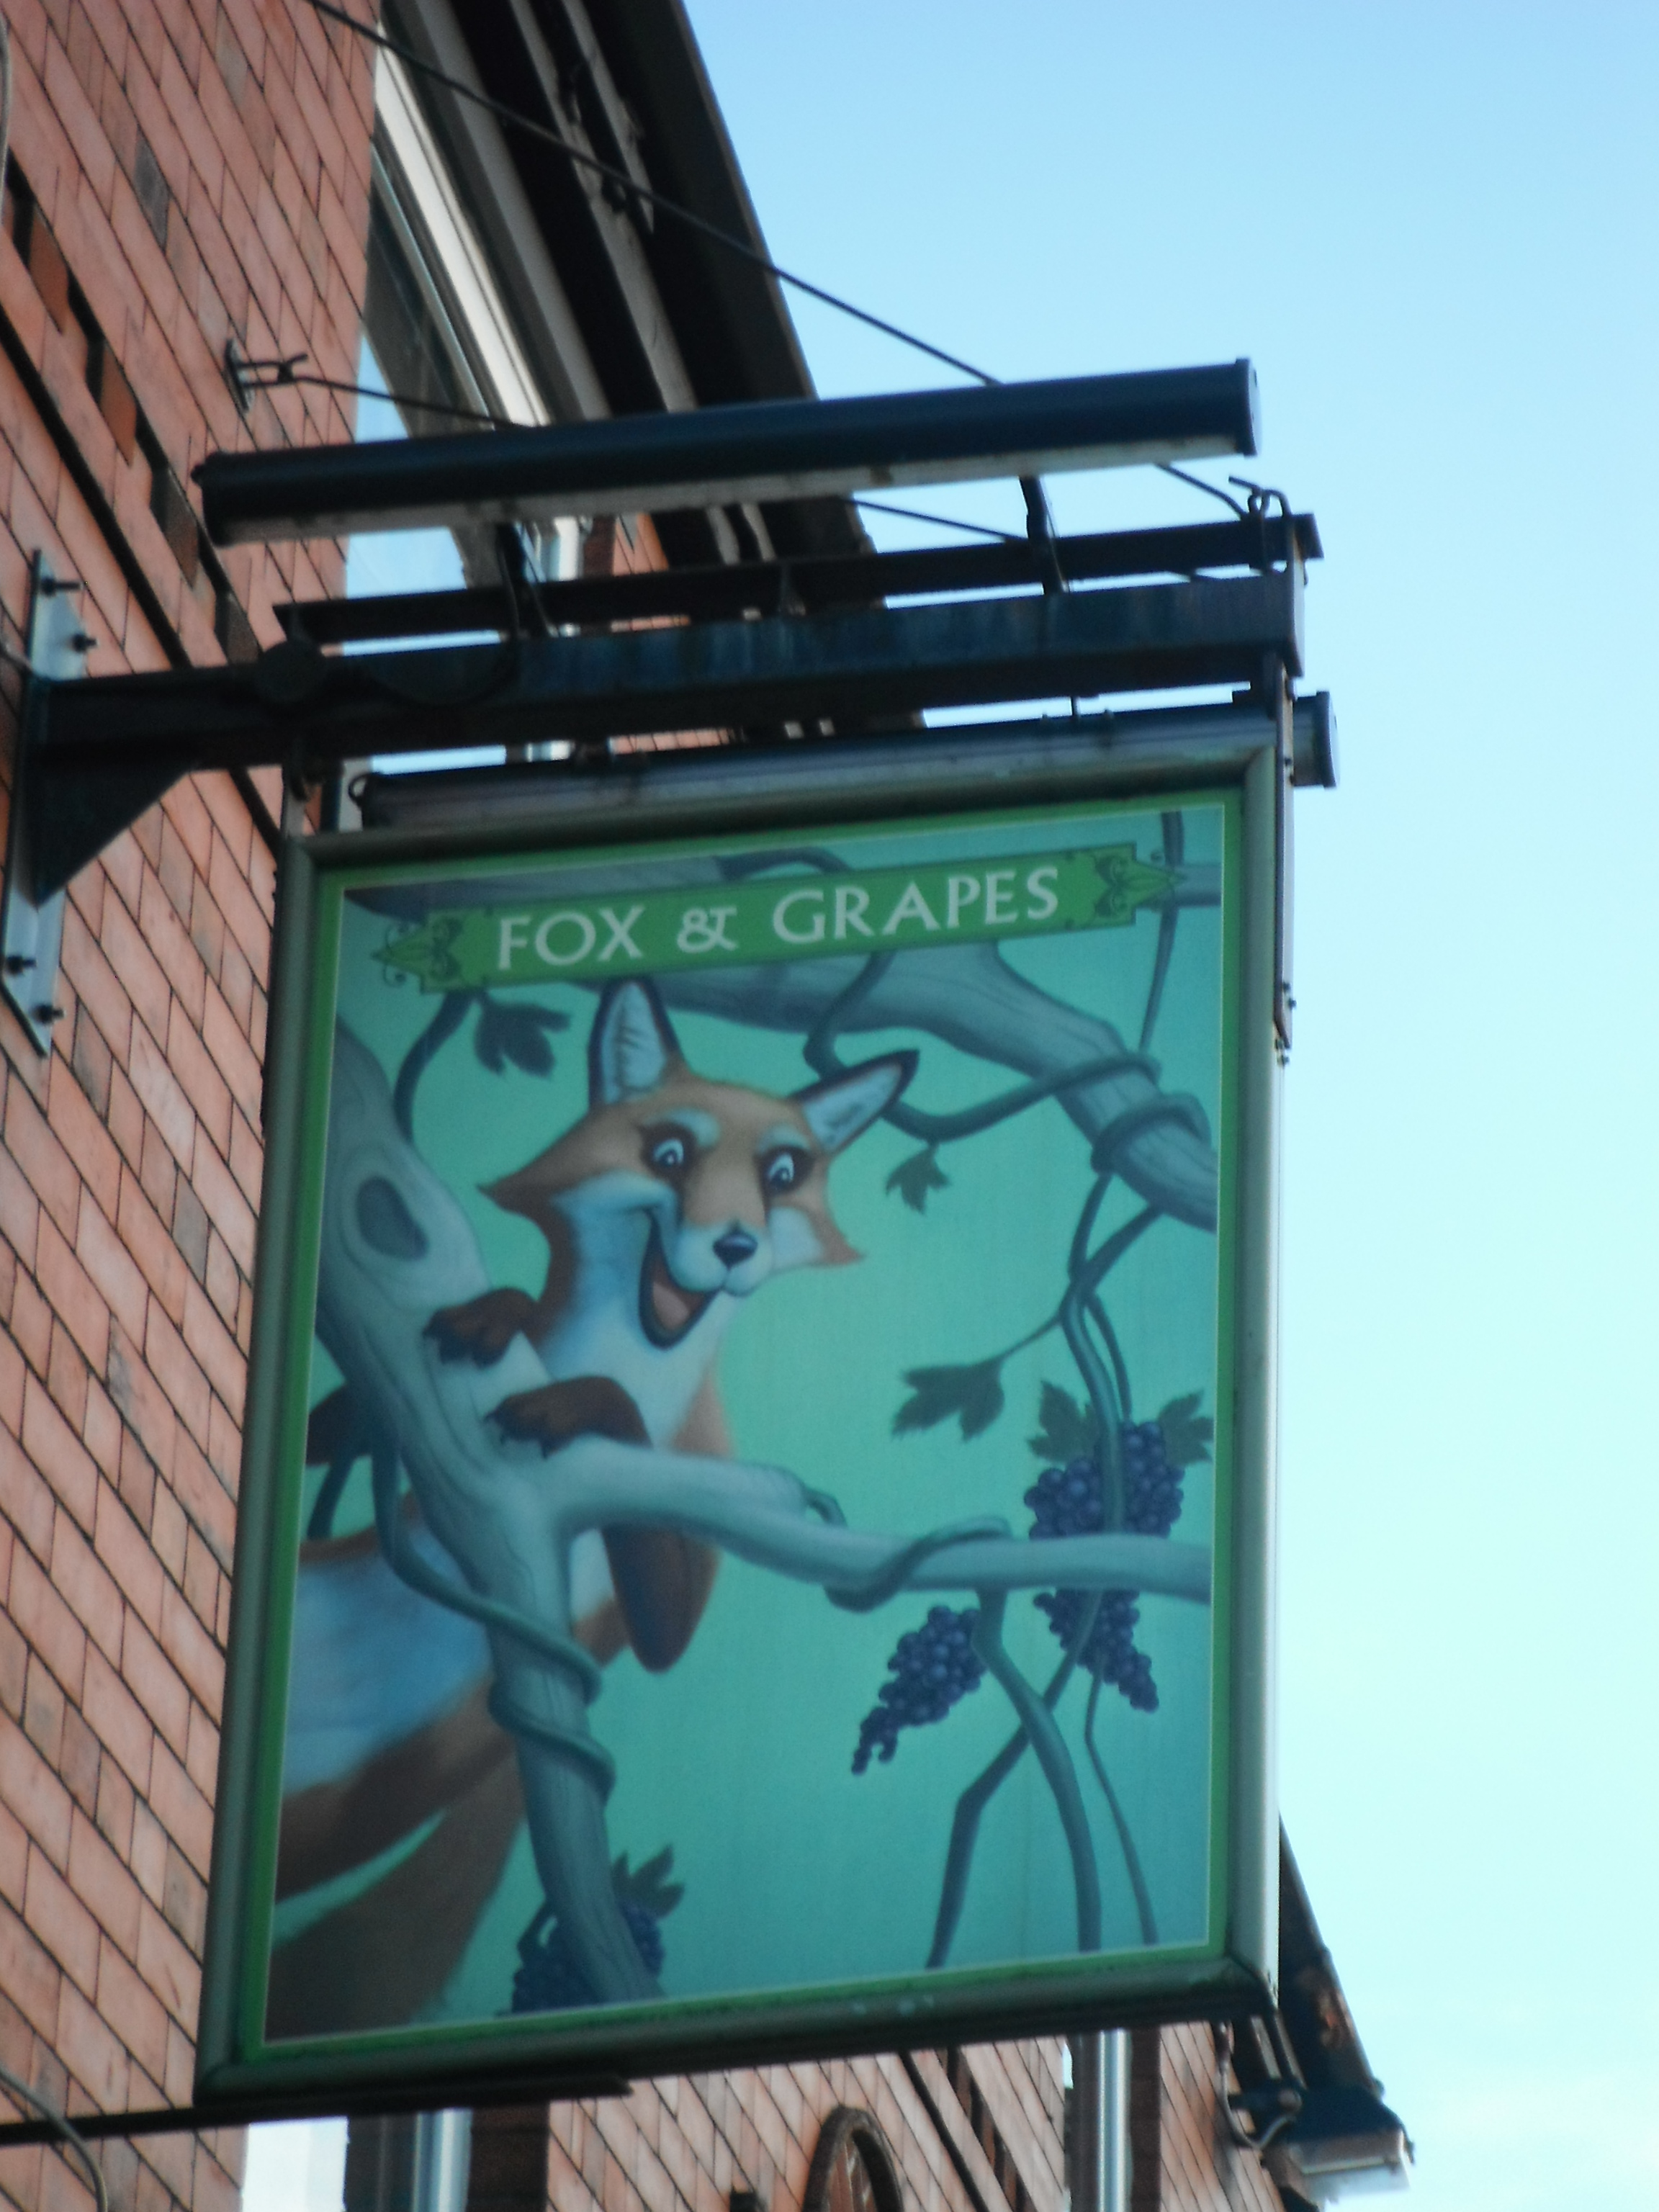 Photo taken by me – The Fox And Grapes pub sign, Preston